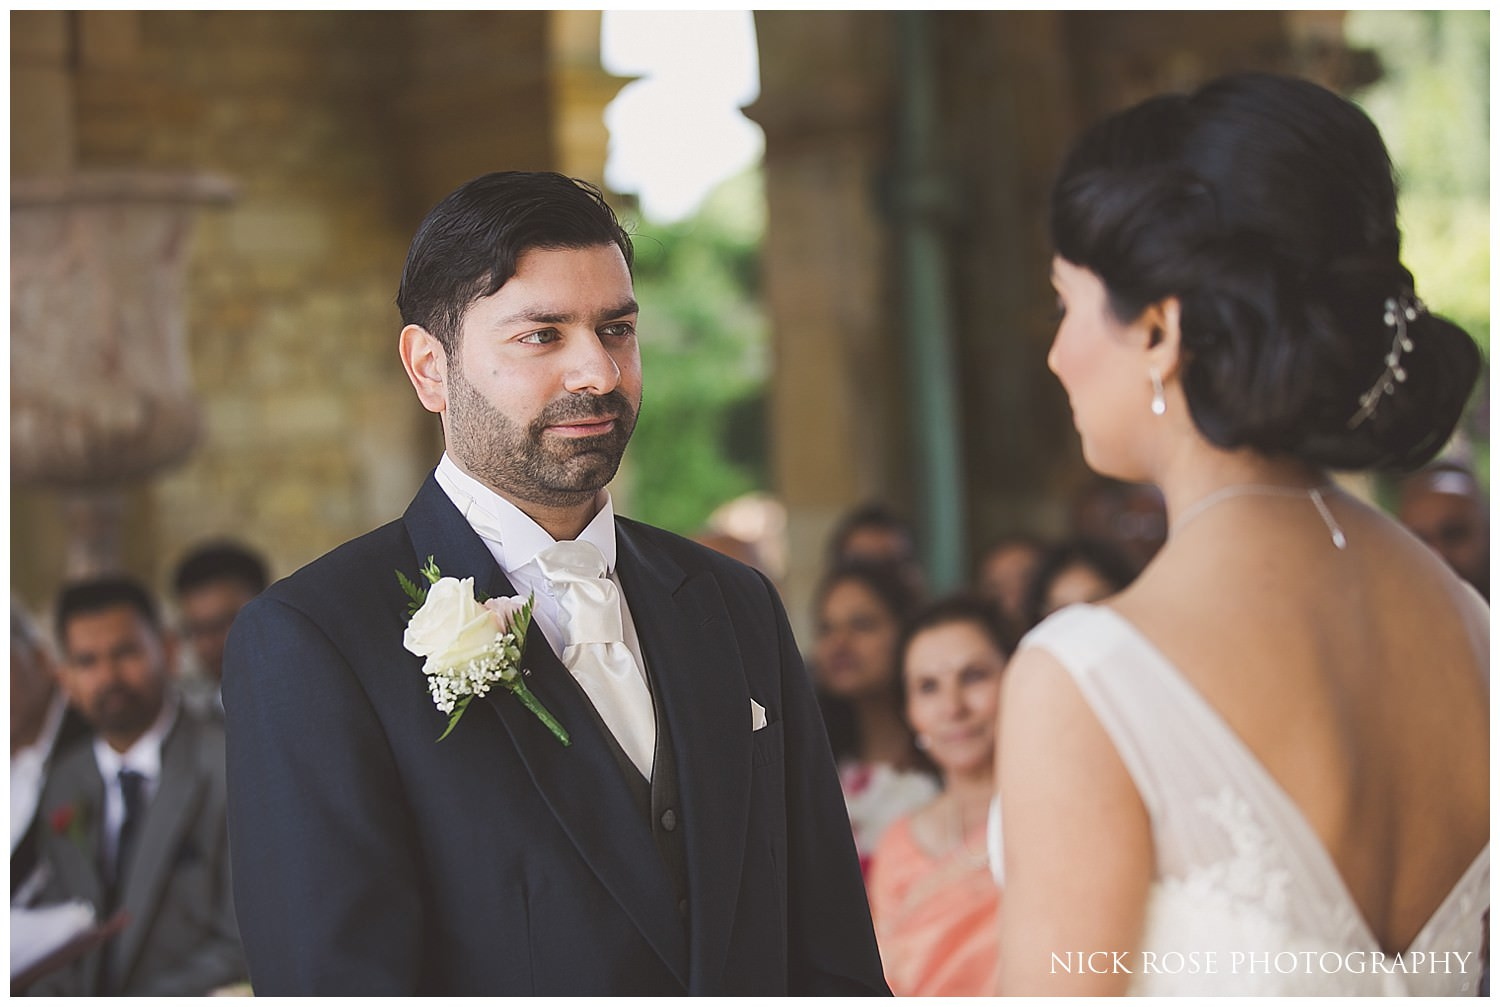 Bride and groom saying wedding vows at Wedding ceremony at Hever Castle